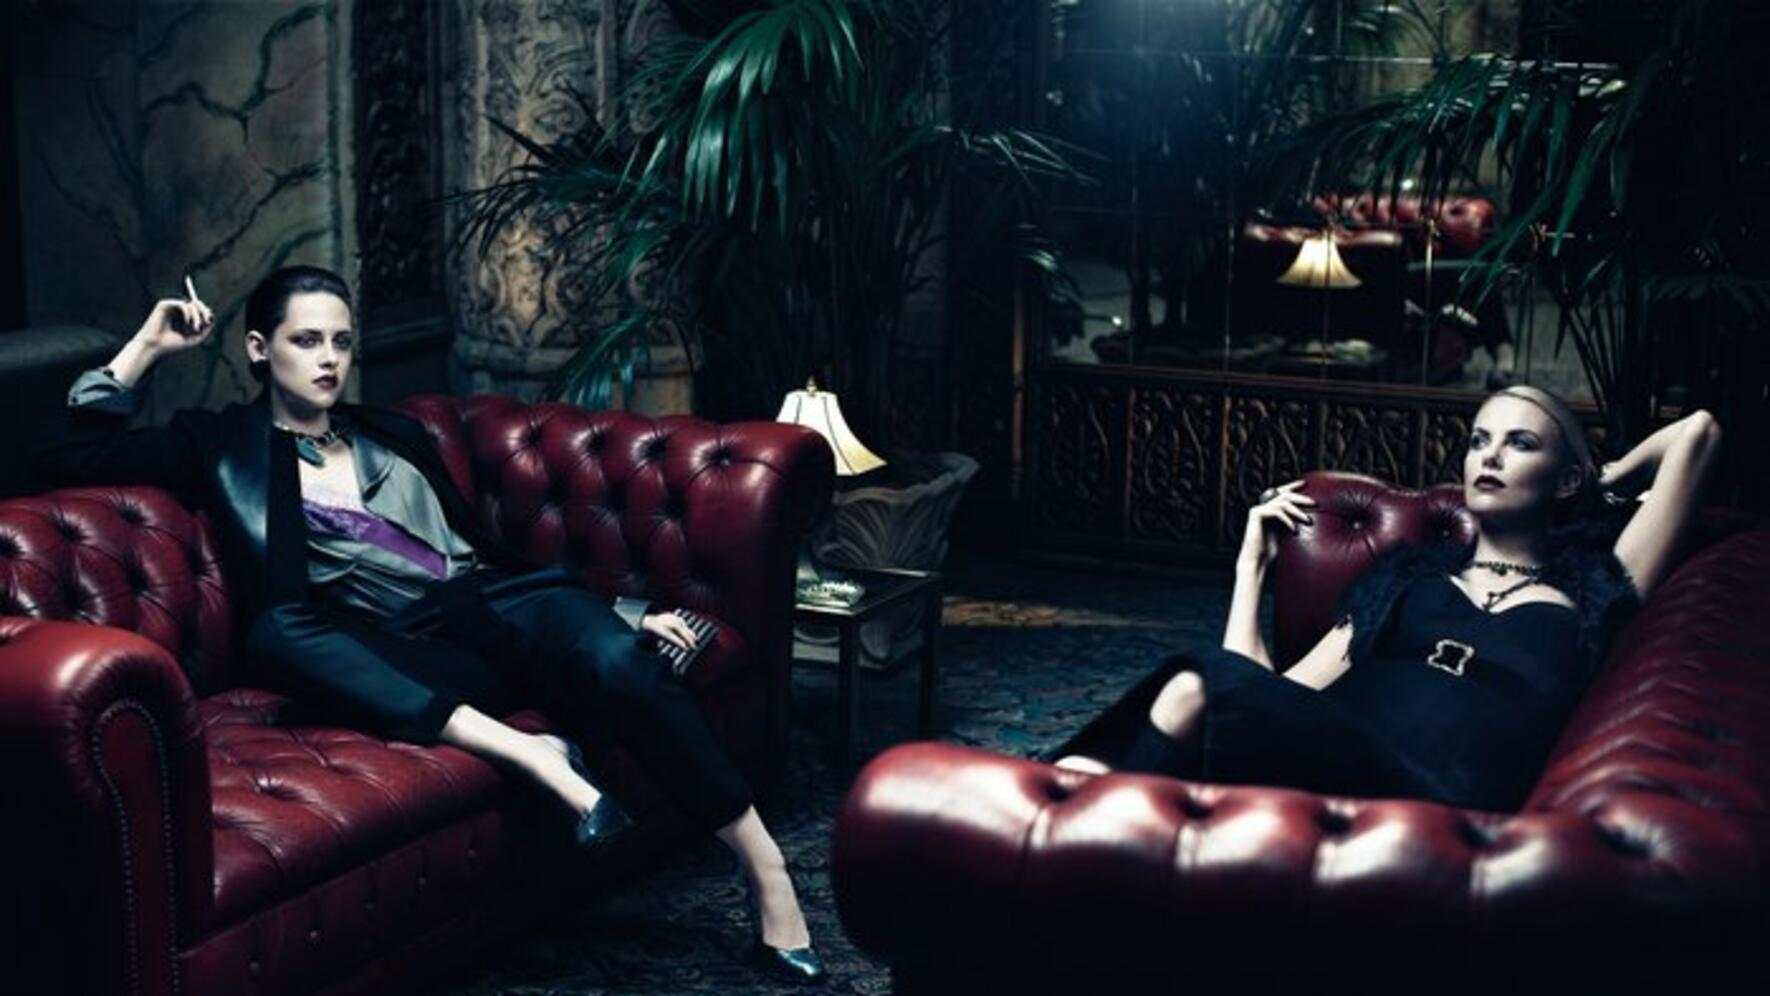 Kristen Stewart Charlize Theron Photoshoot Interview Magazine Sofas